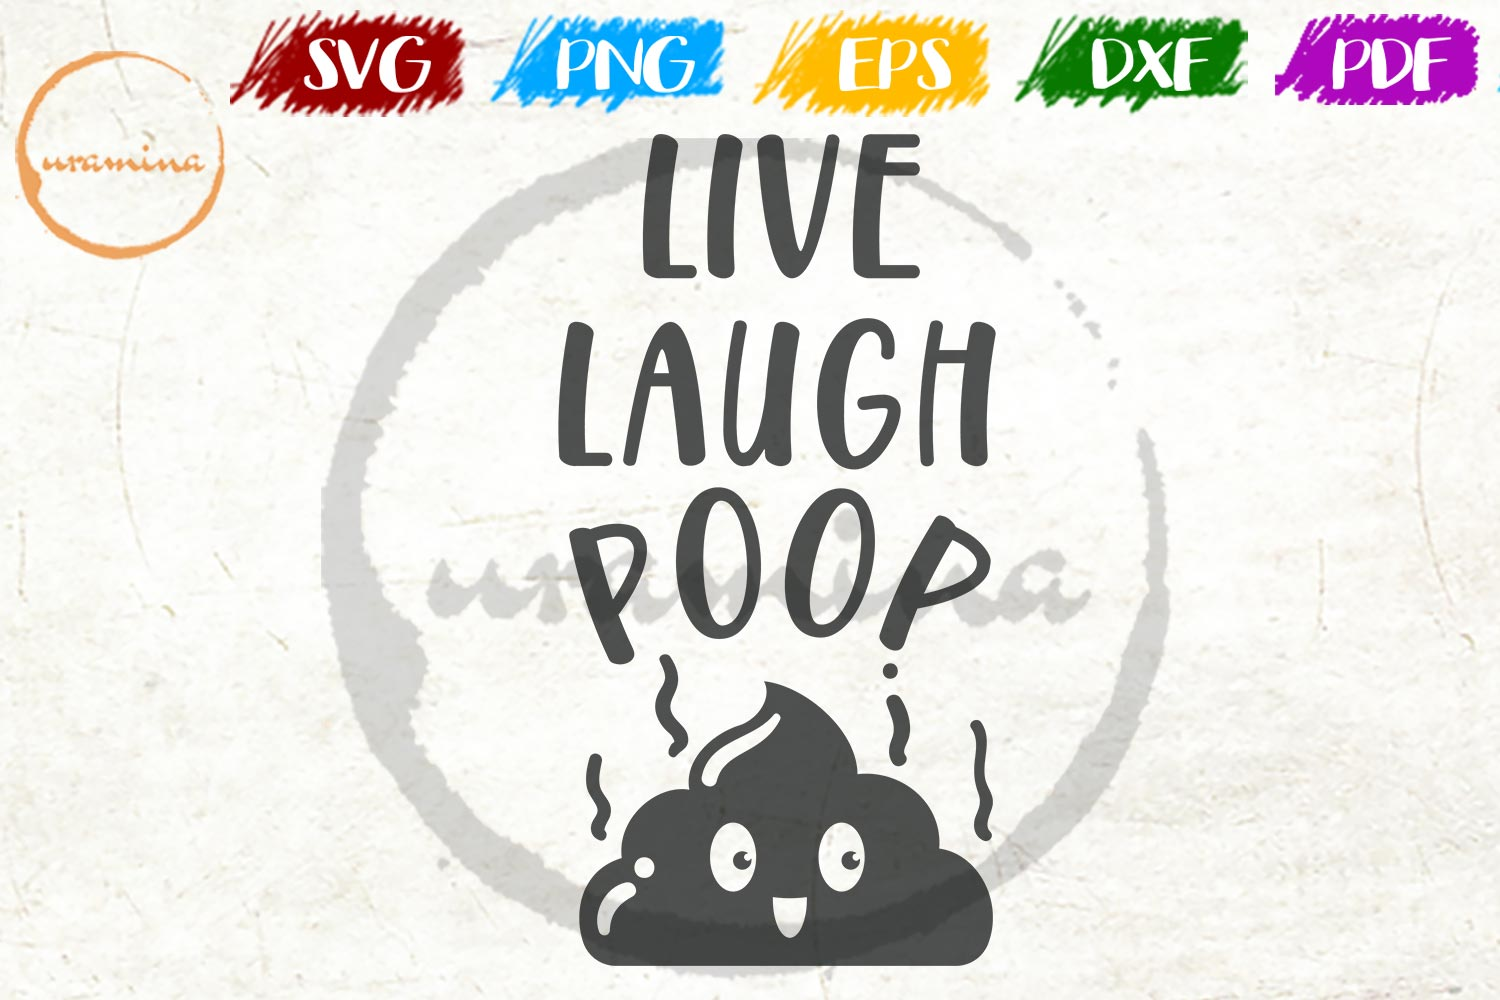 Download Free Live Laugh Poop Graphic By Uramina Creative Fabrica for Cricut Explore, Silhouette and other cutting machines.